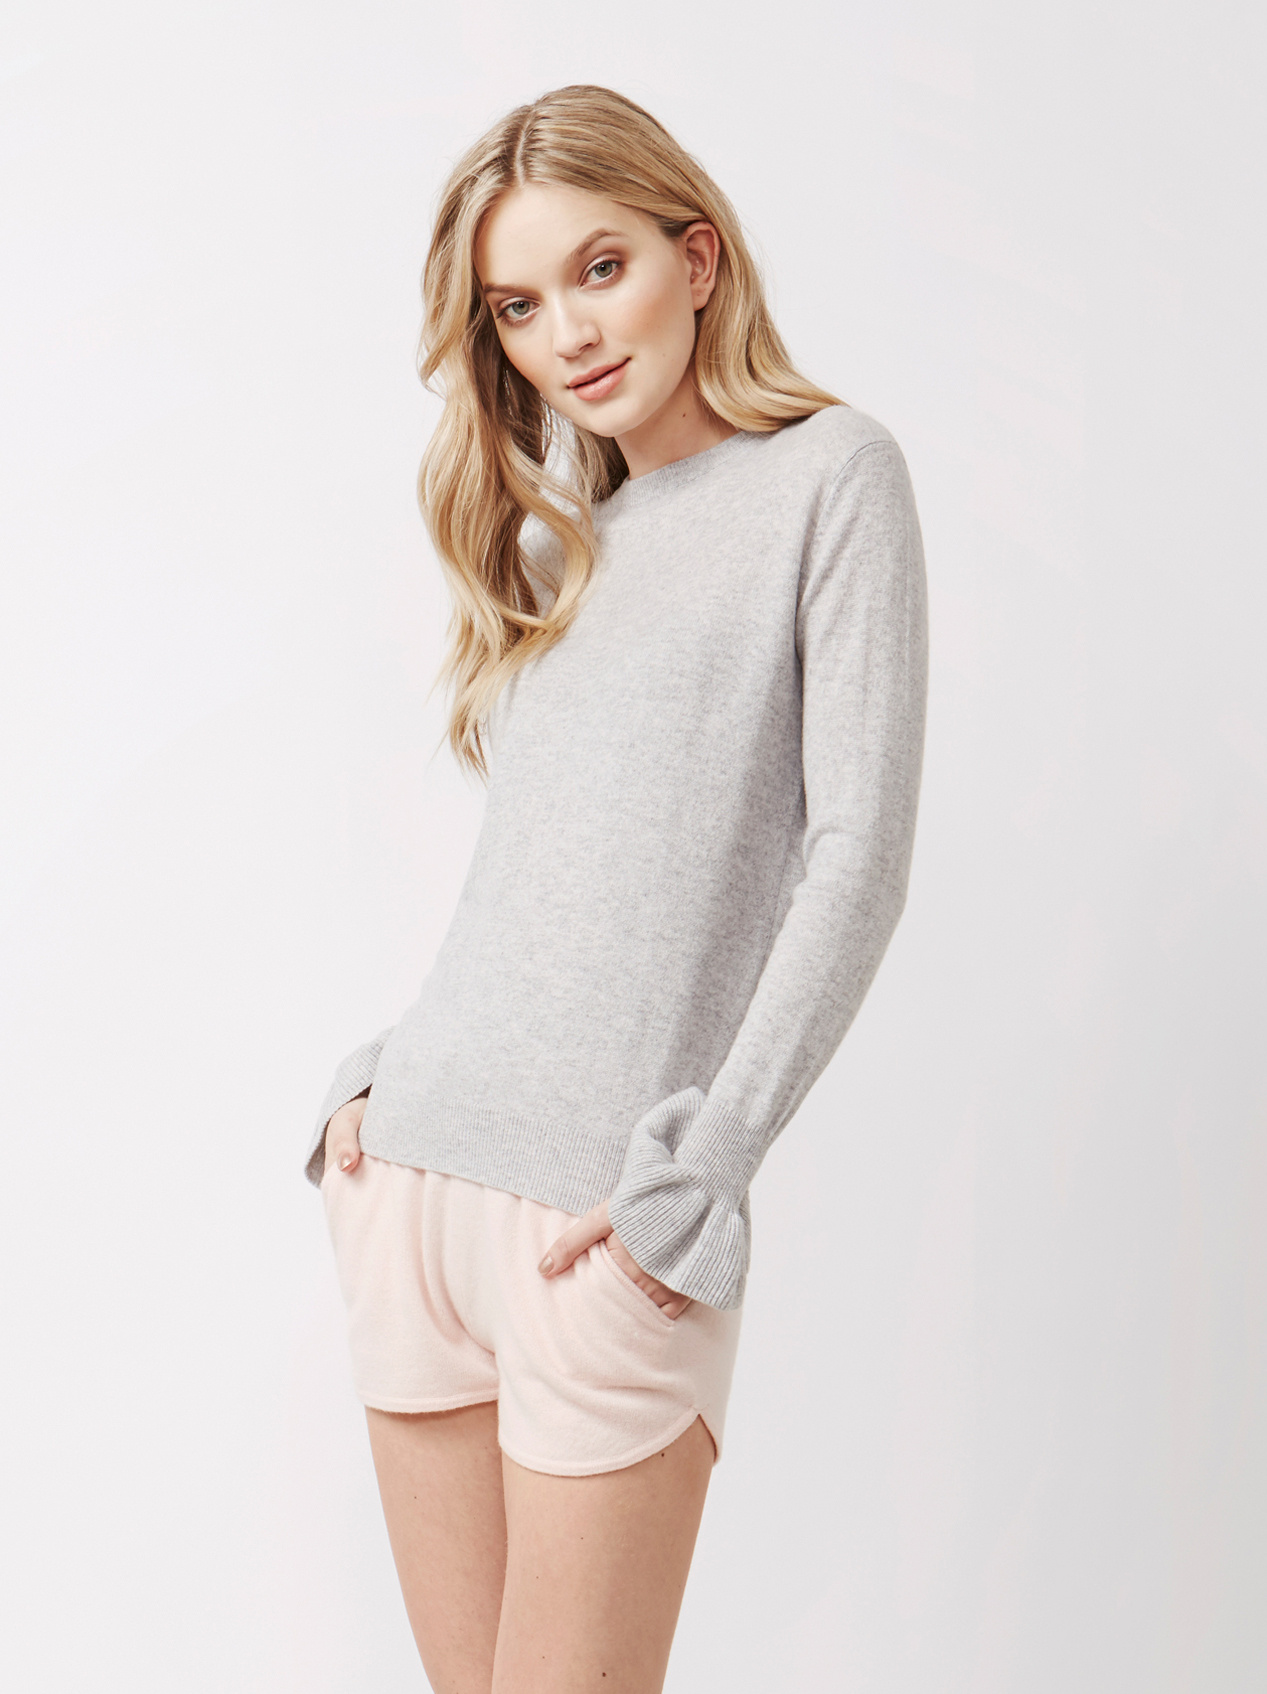 Soft Goat Women's Frill Sweater Light Grey